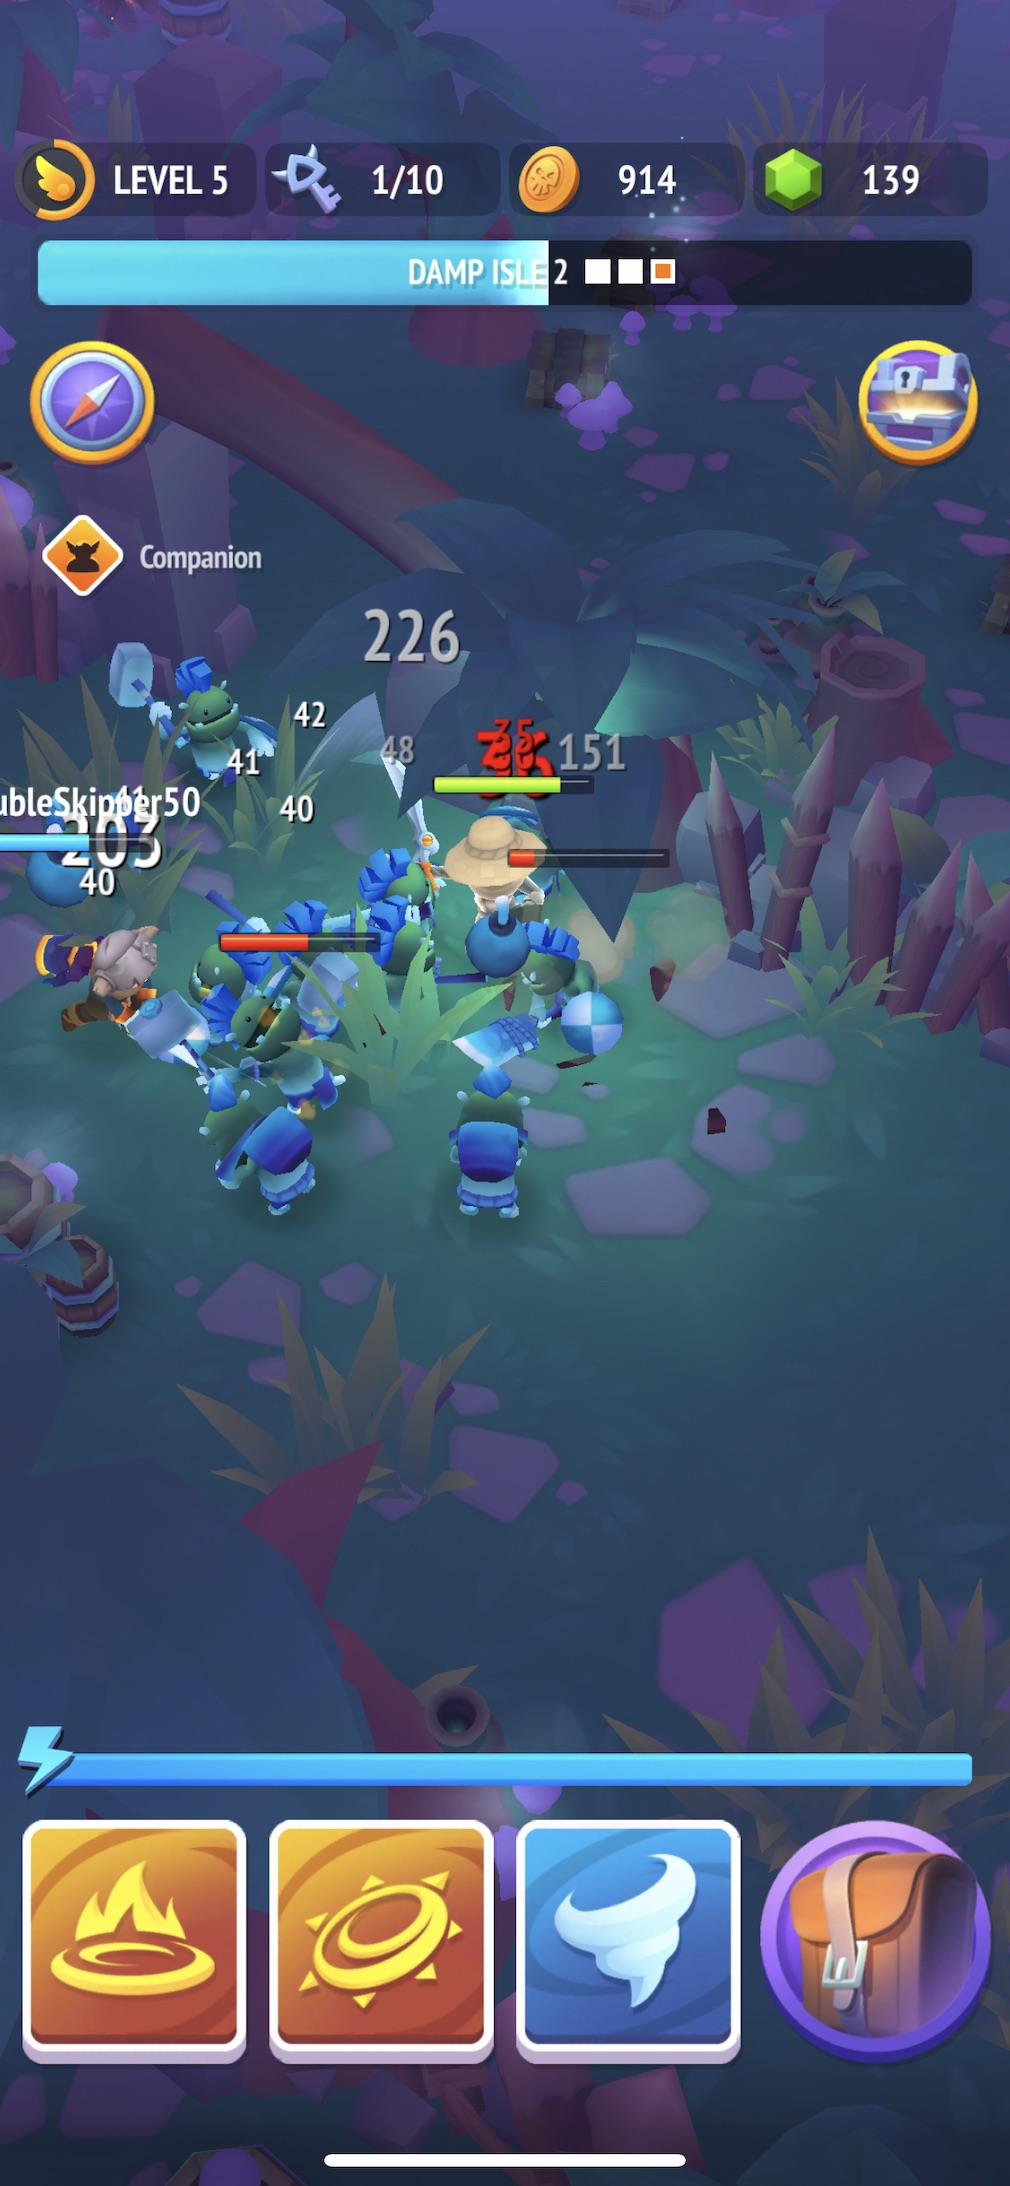 Nonstop Knight 2 iOS screenshot - Attacking in a night forest